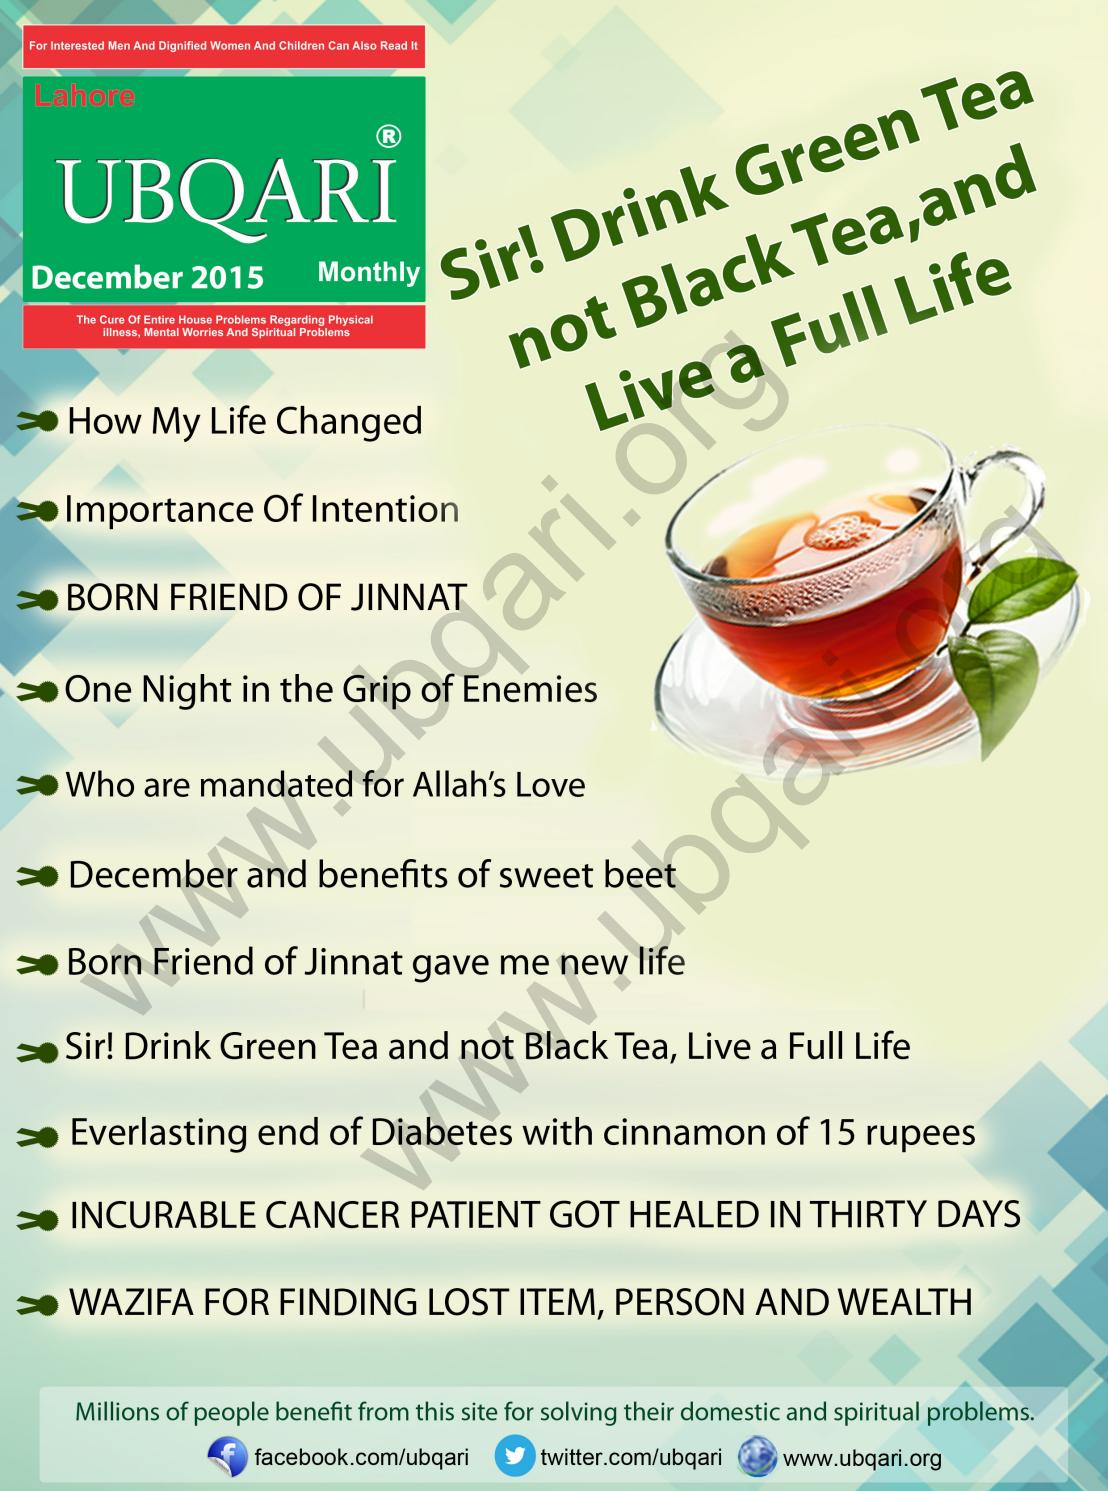 Monthly Ubqari Magazine Dec 2015 by Ubqari - issuu